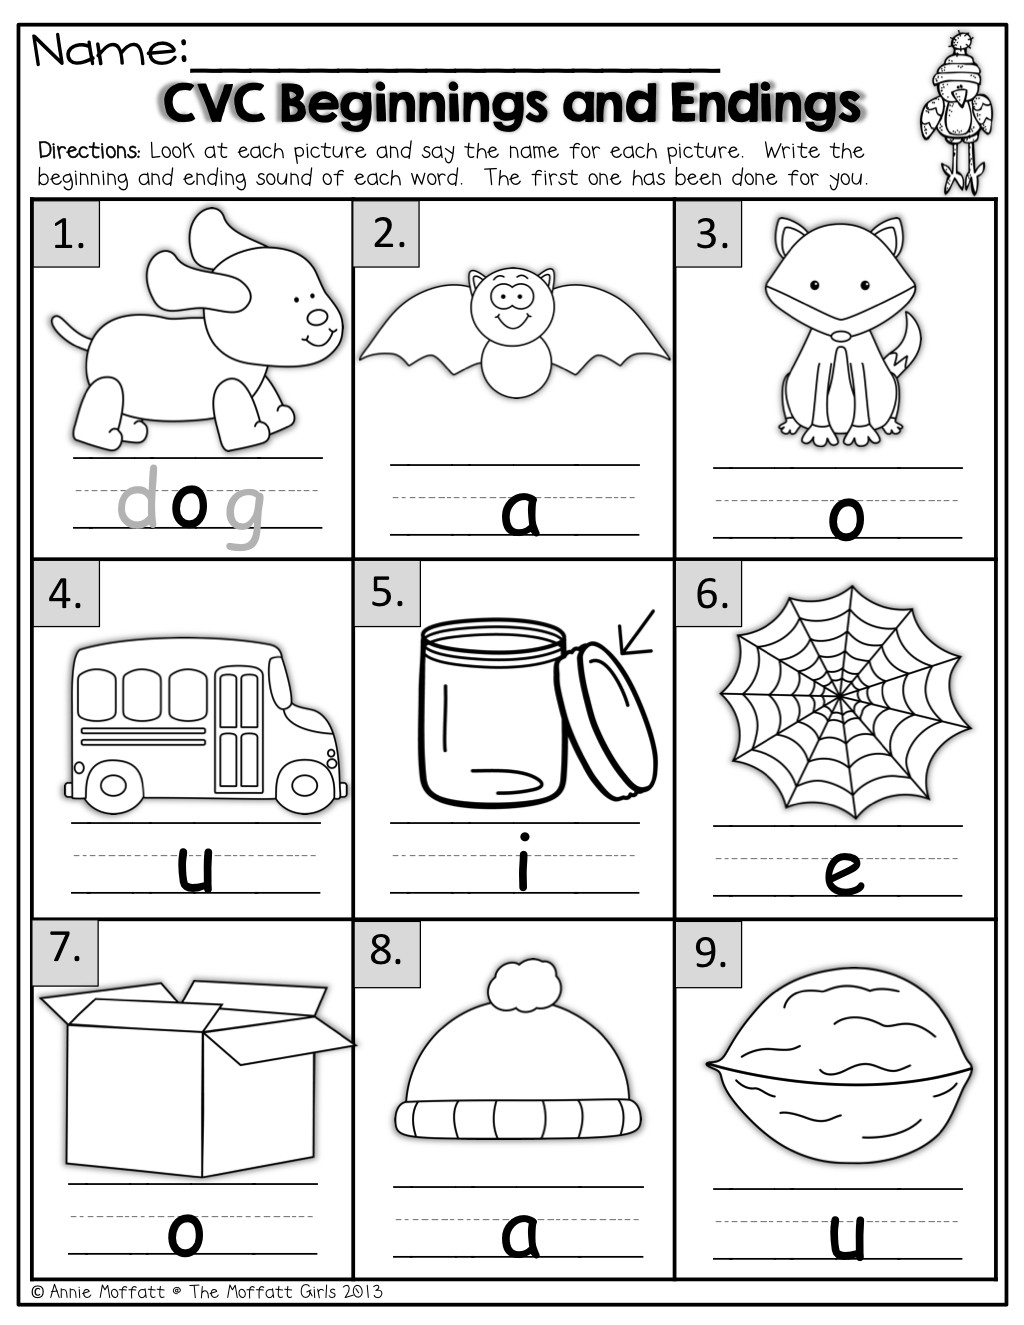 Medial sounds Worksheets First Grade Cvc Beginning and Ending sound Worksheet